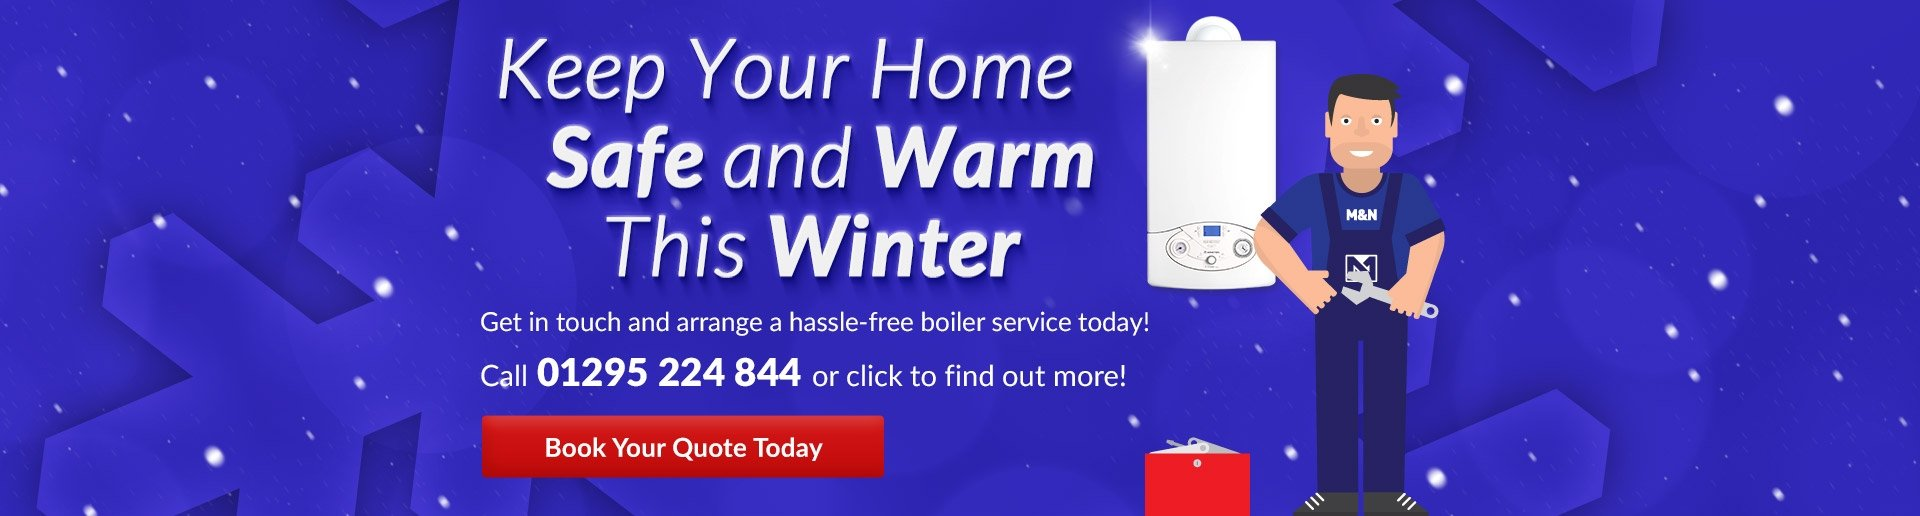 Boiler Service This Winter